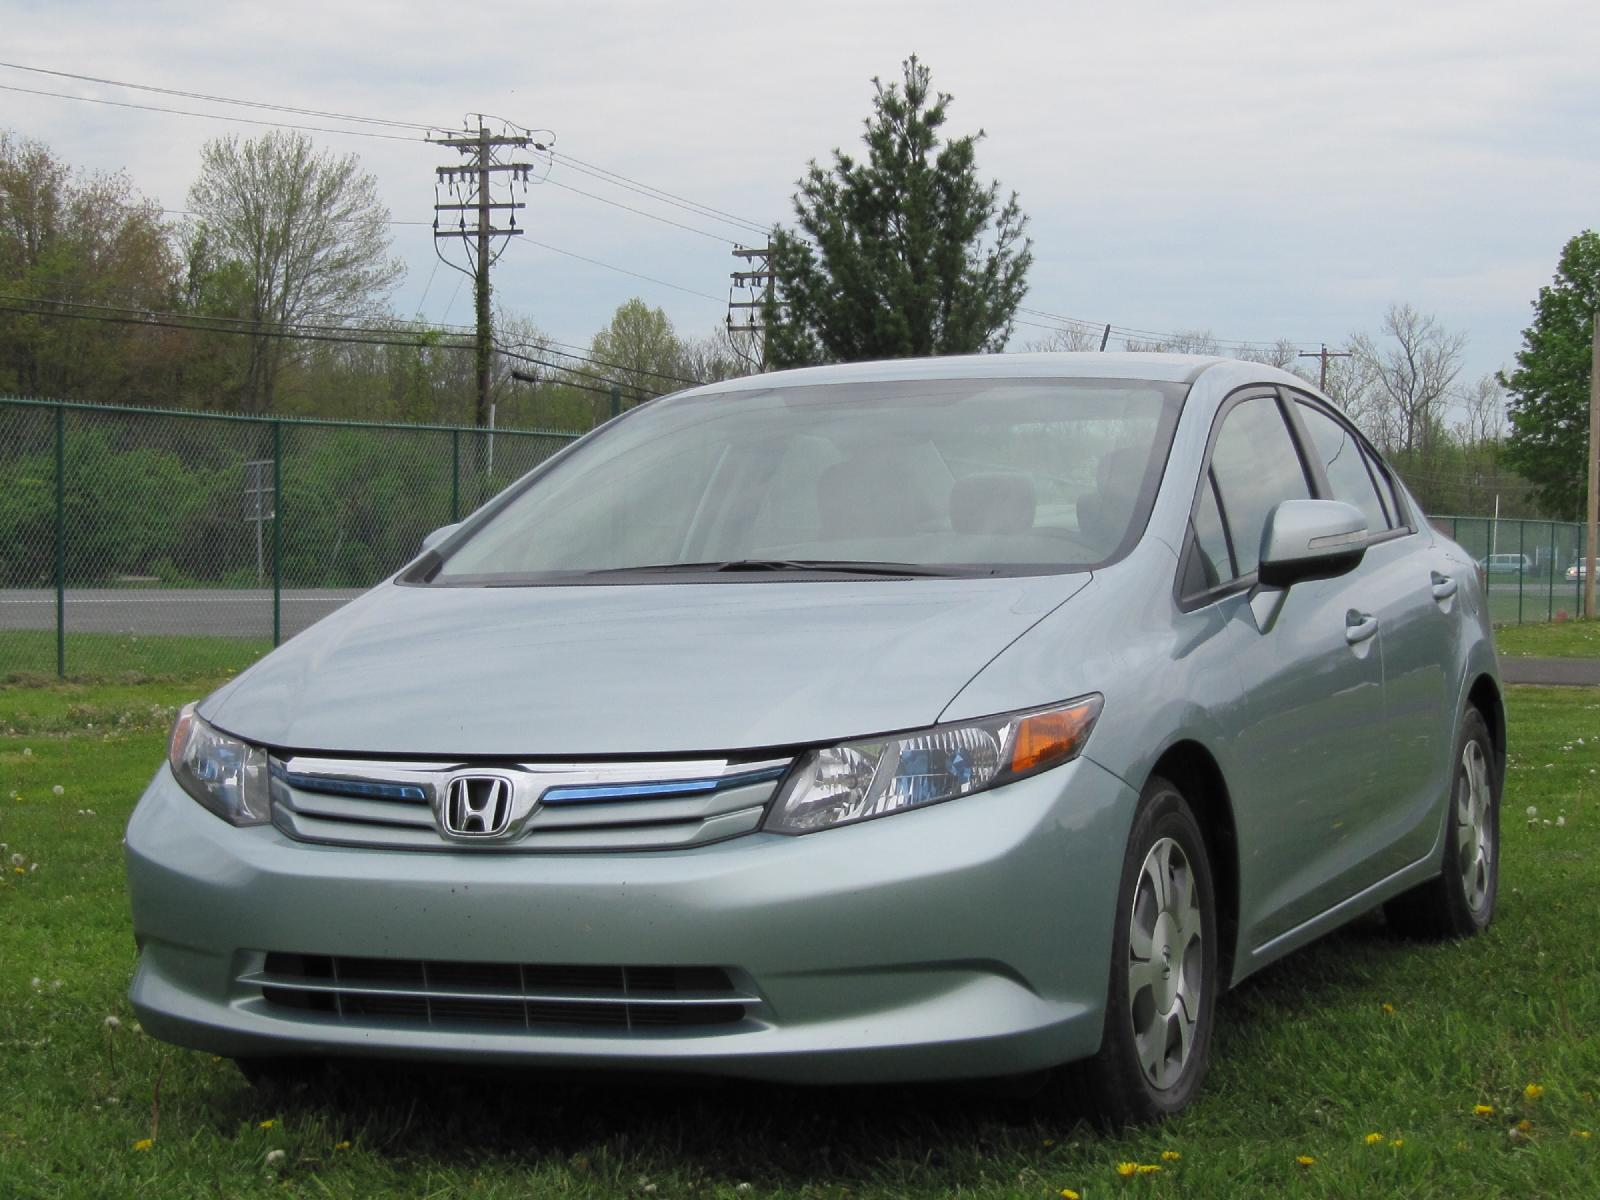 2012 honda civic hybrid hammer it how high is gas mileage. Black Bedroom Furniture Sets. Home Design Ideas